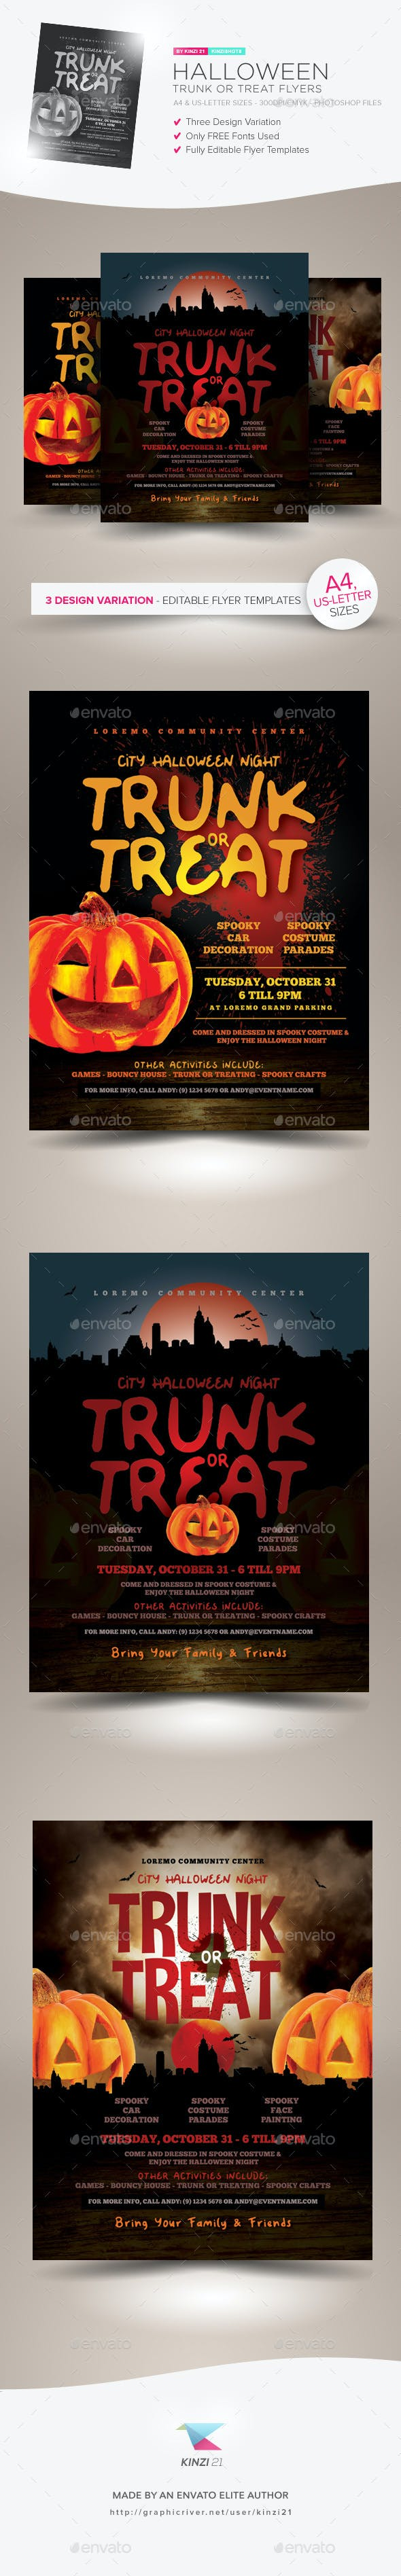 halloween trunk or treat flyer templates by kinzishots graphicriver